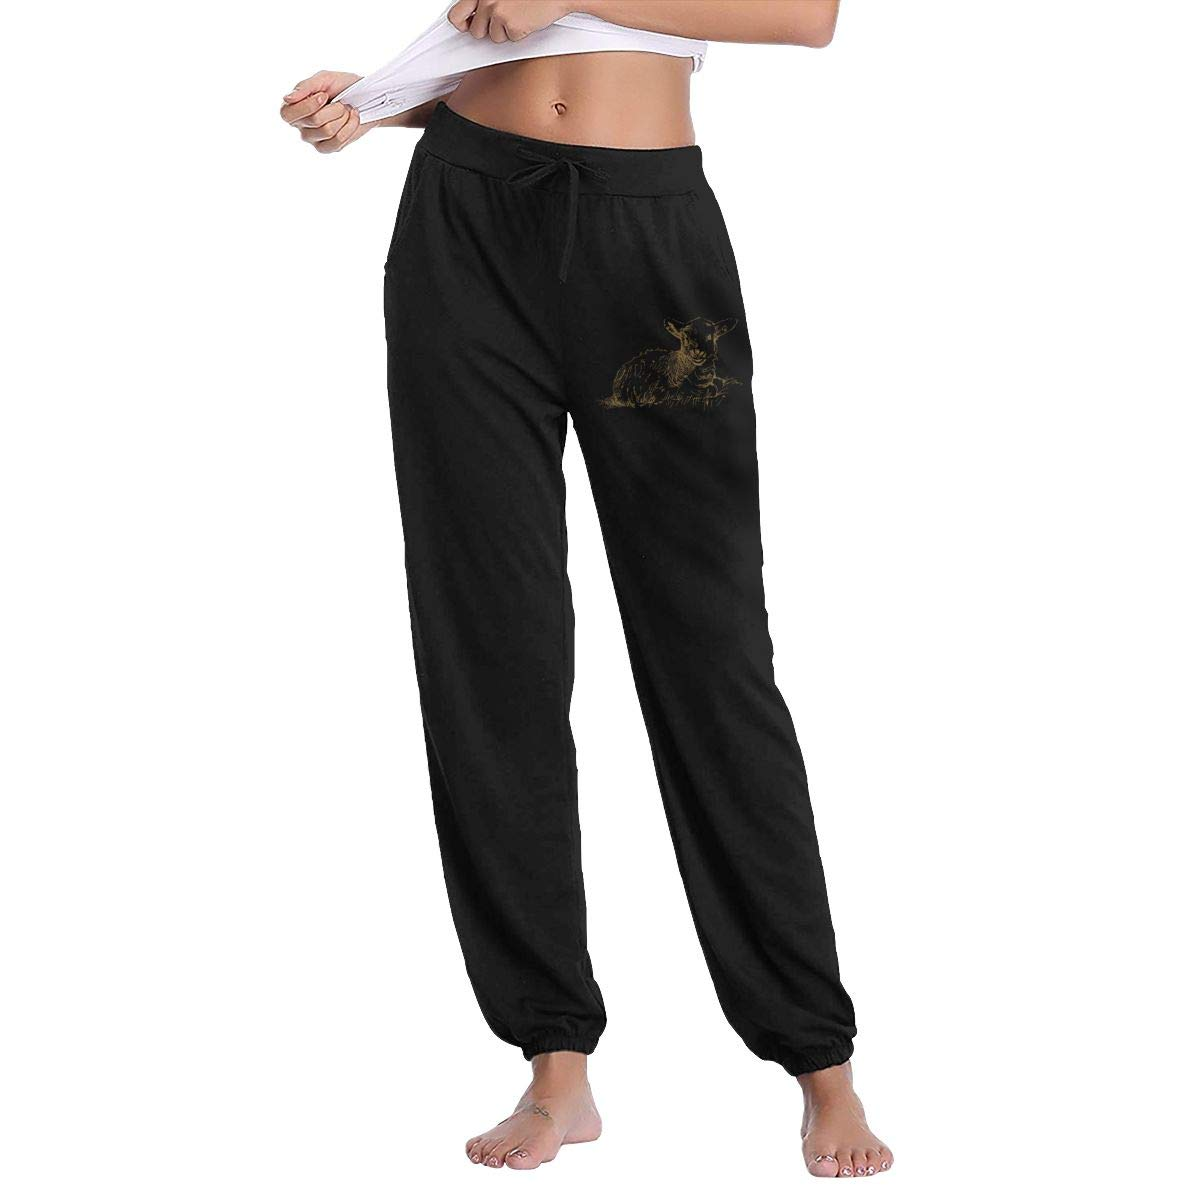 Women's Jogger Sweatpants Sheep On Grass Active Yoga Lounge Relaxed Fit Casual Pants with Pockets Workout Training Running Black